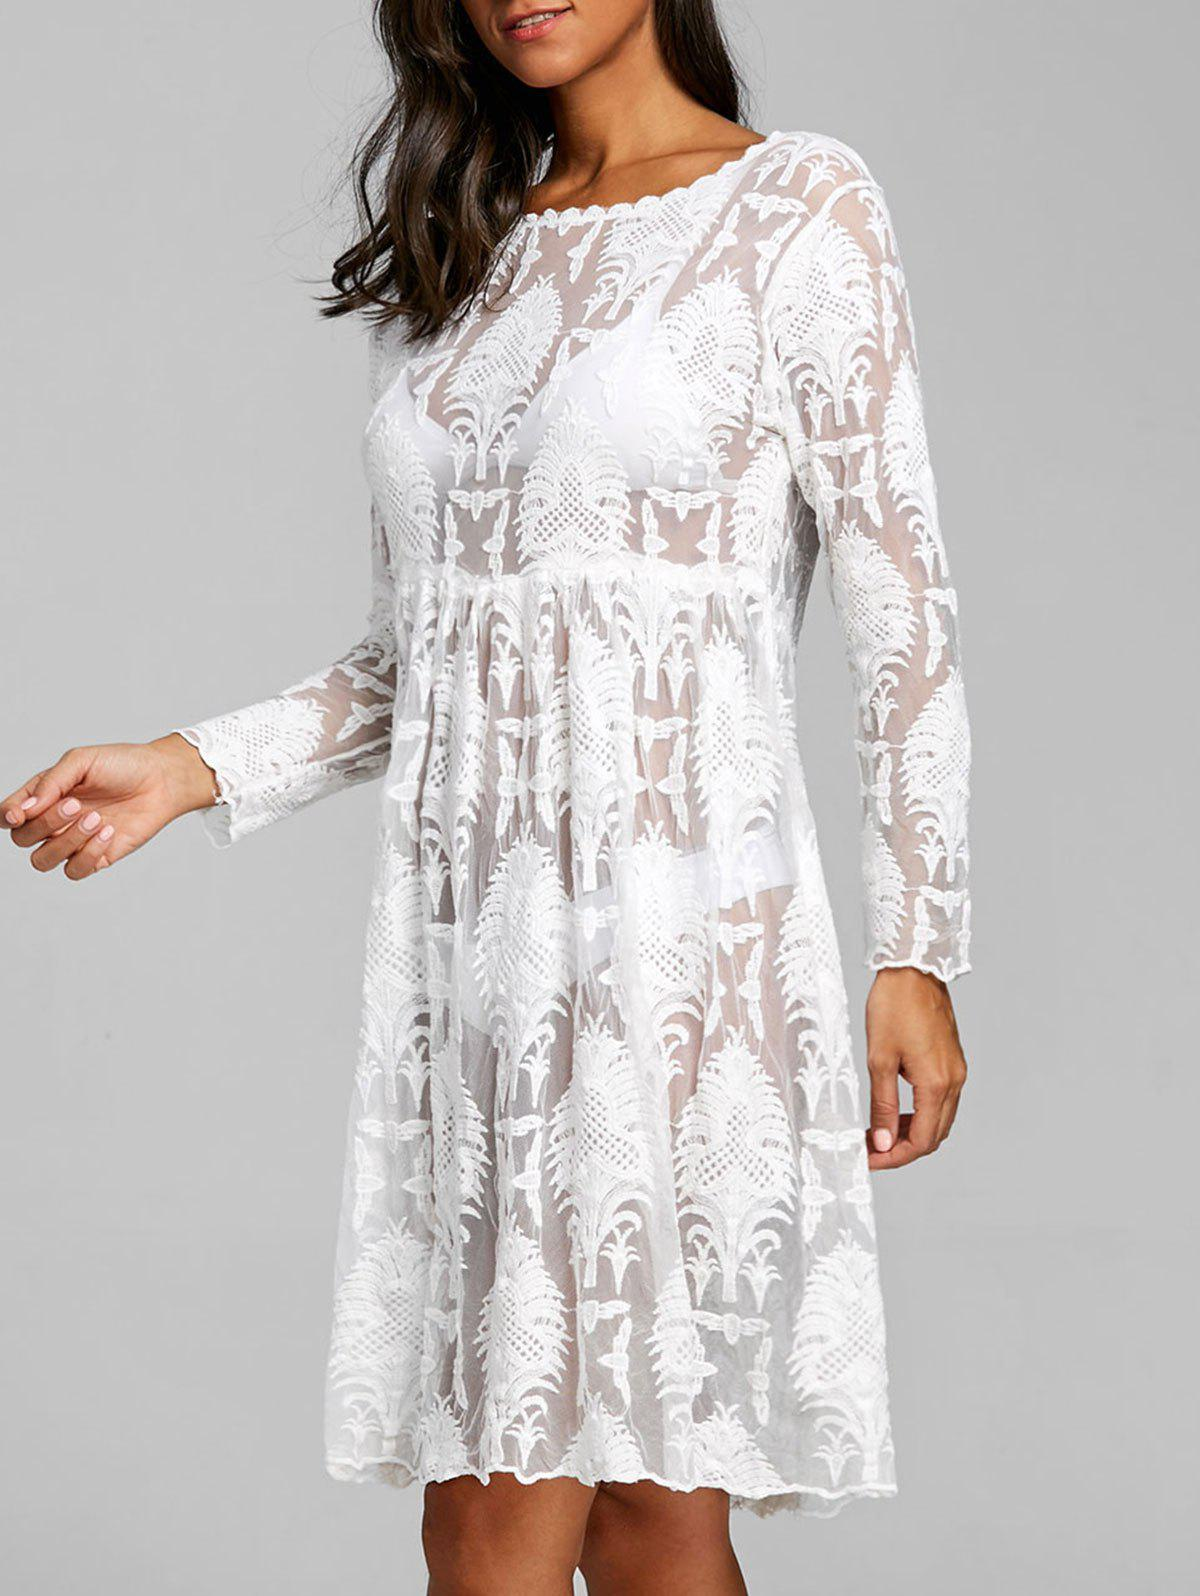 New Arab Jacquard High Waist Lace Cover Up Dress